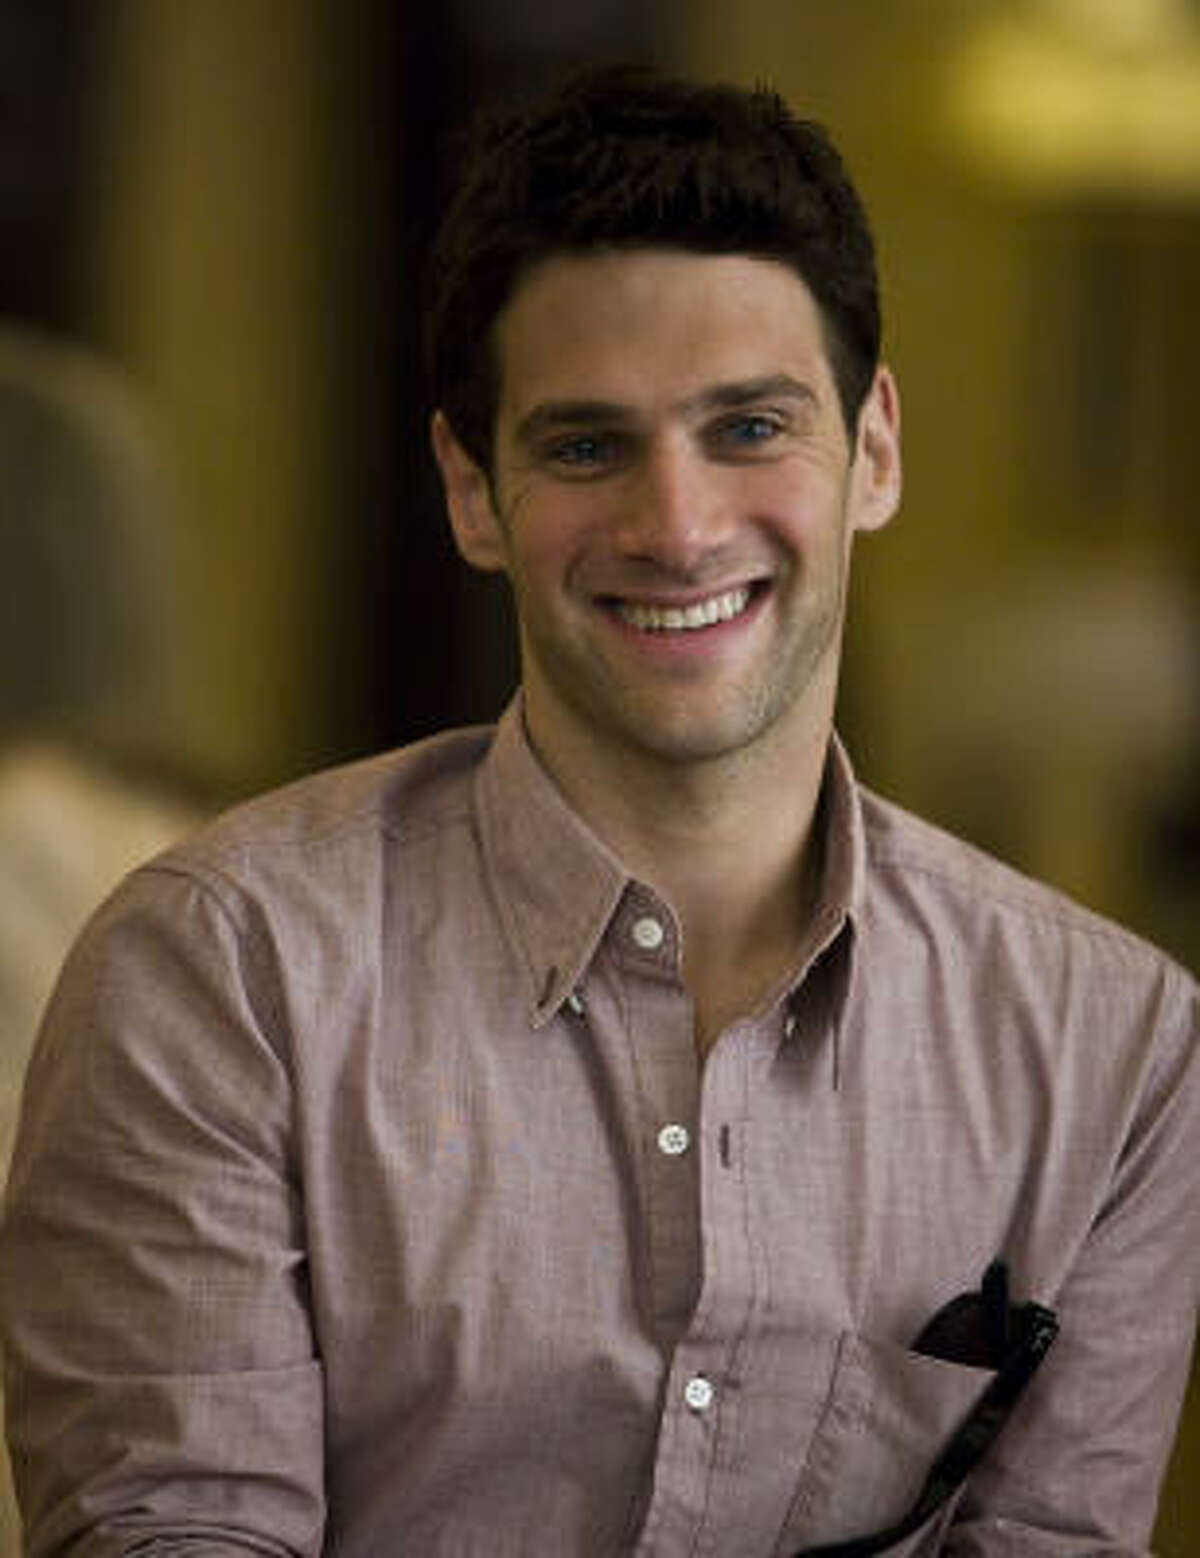 You may also remember Justin Bartha from the National Treasure movies.